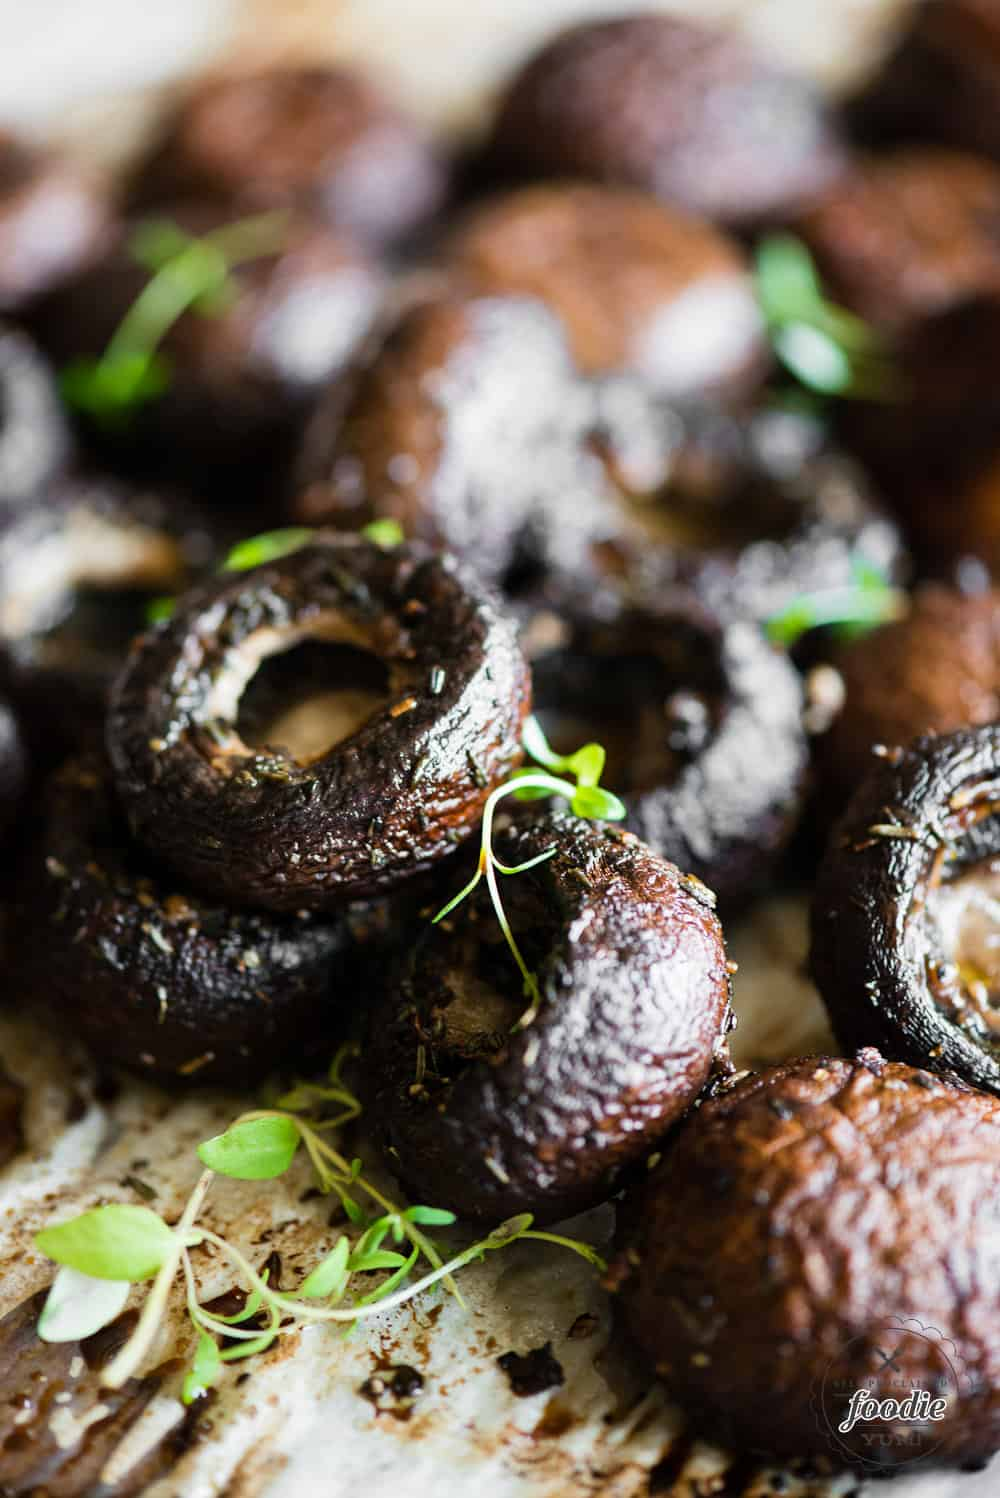 How to make Balsamic Roasted Mushrooms in oven